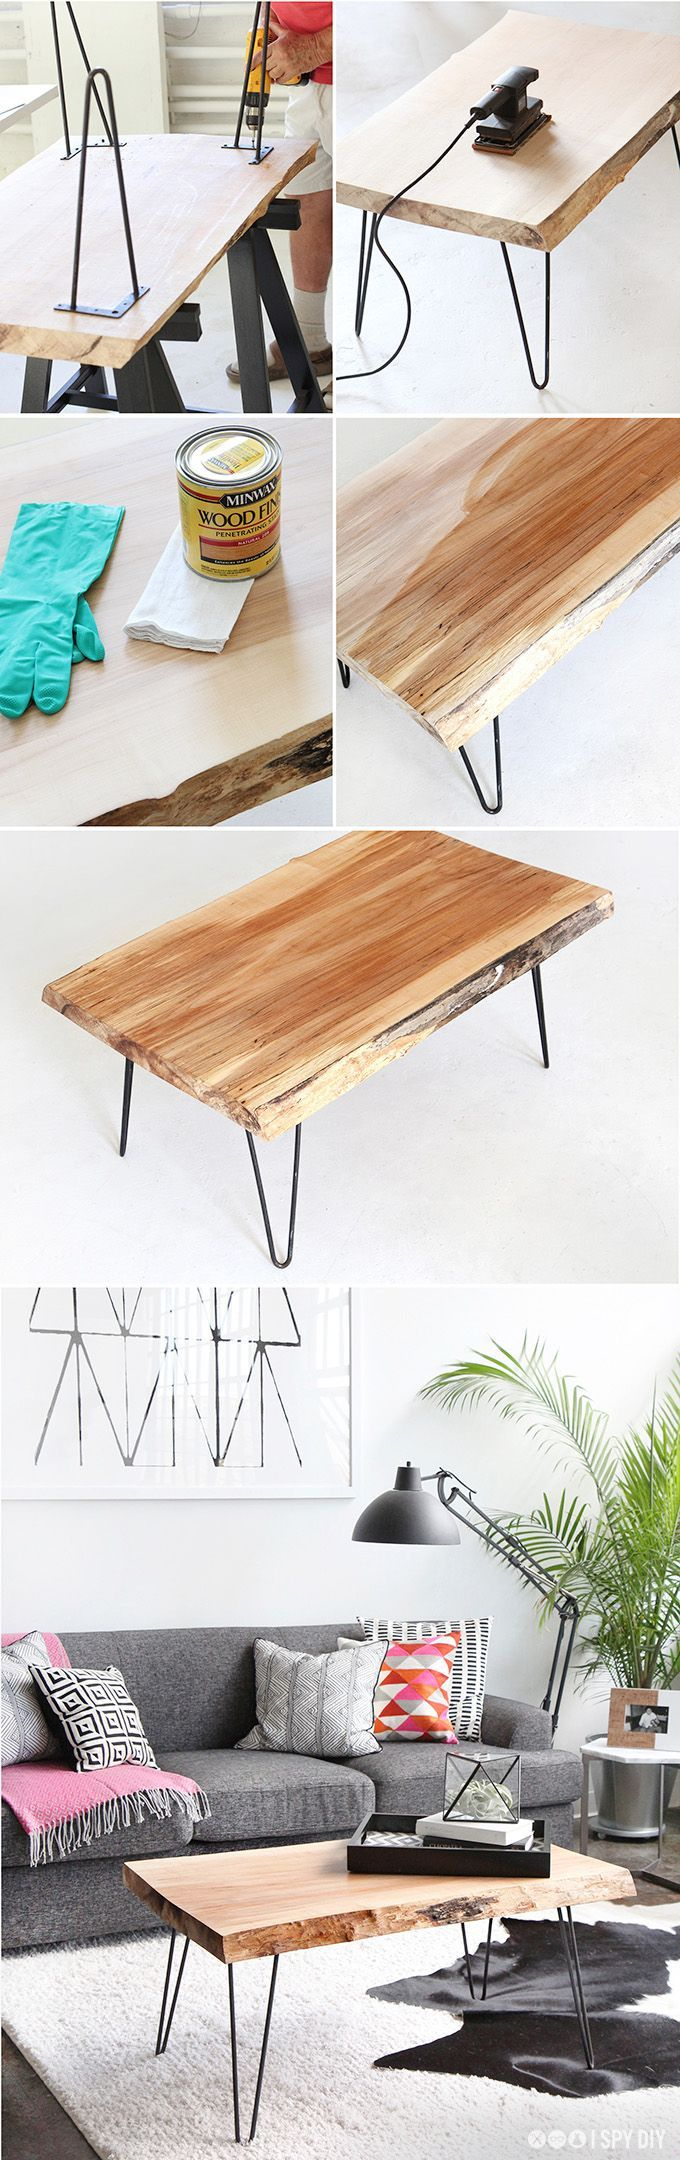 Hairpin Legs Couchtisch Wood Profits - Steps | Diy Wood Slab Hairpin Leg Coffee Table Ispydiy Discover How You Can Start A Woodworking Business From Ho… | Decor, Home Decor, Diy Home Decor